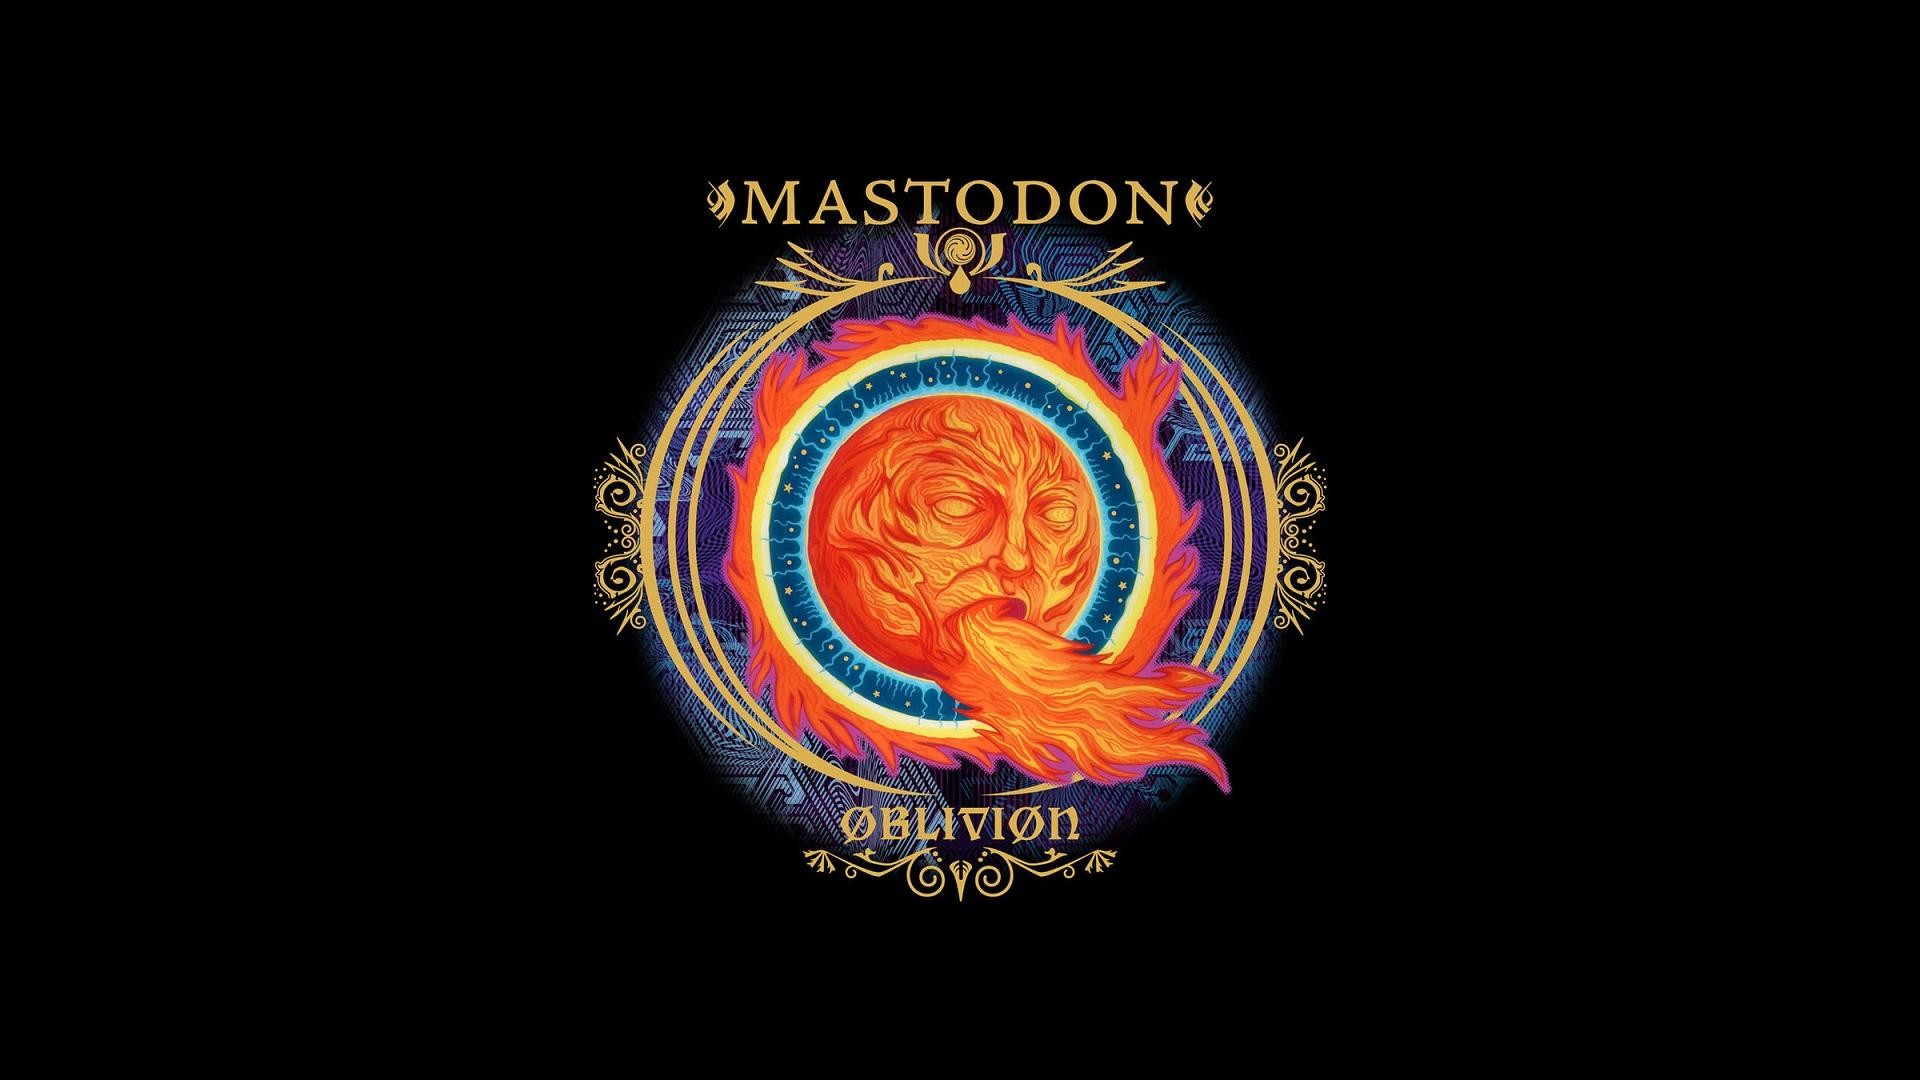 1920x1080 Mastodon Band Wallpaper